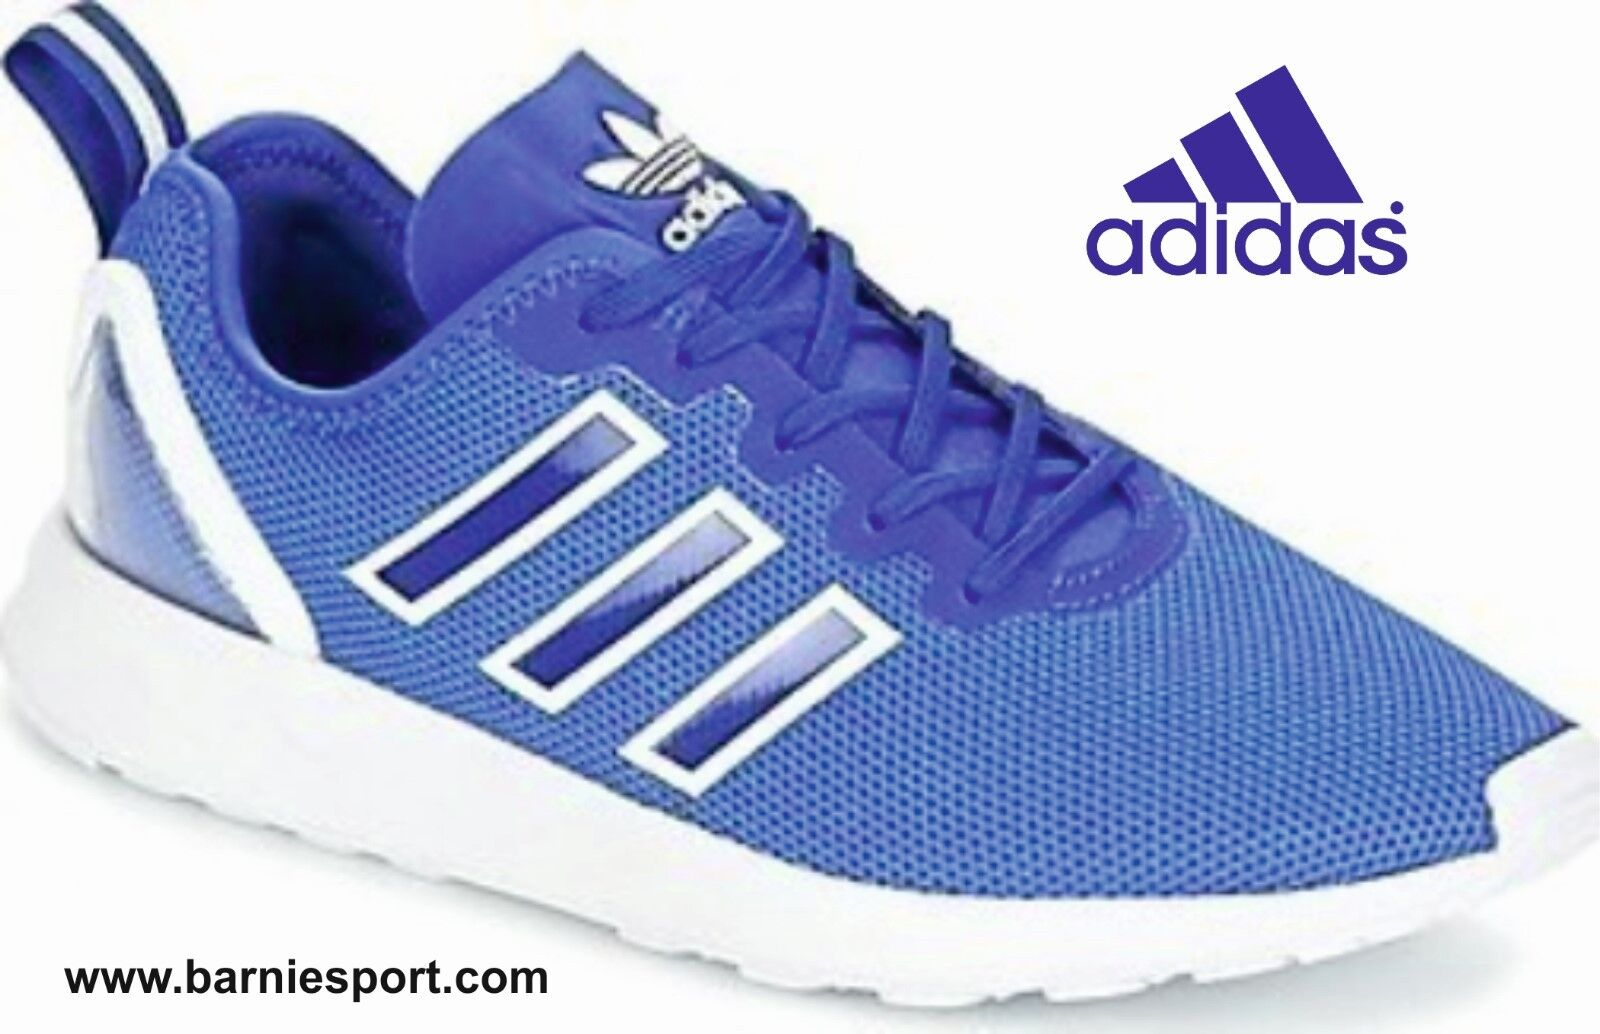 UK Taille 9½. ADIDAS ZX FLUX ADV RUNNING/TRAINING SHOE.   NEW!   SAVE £10